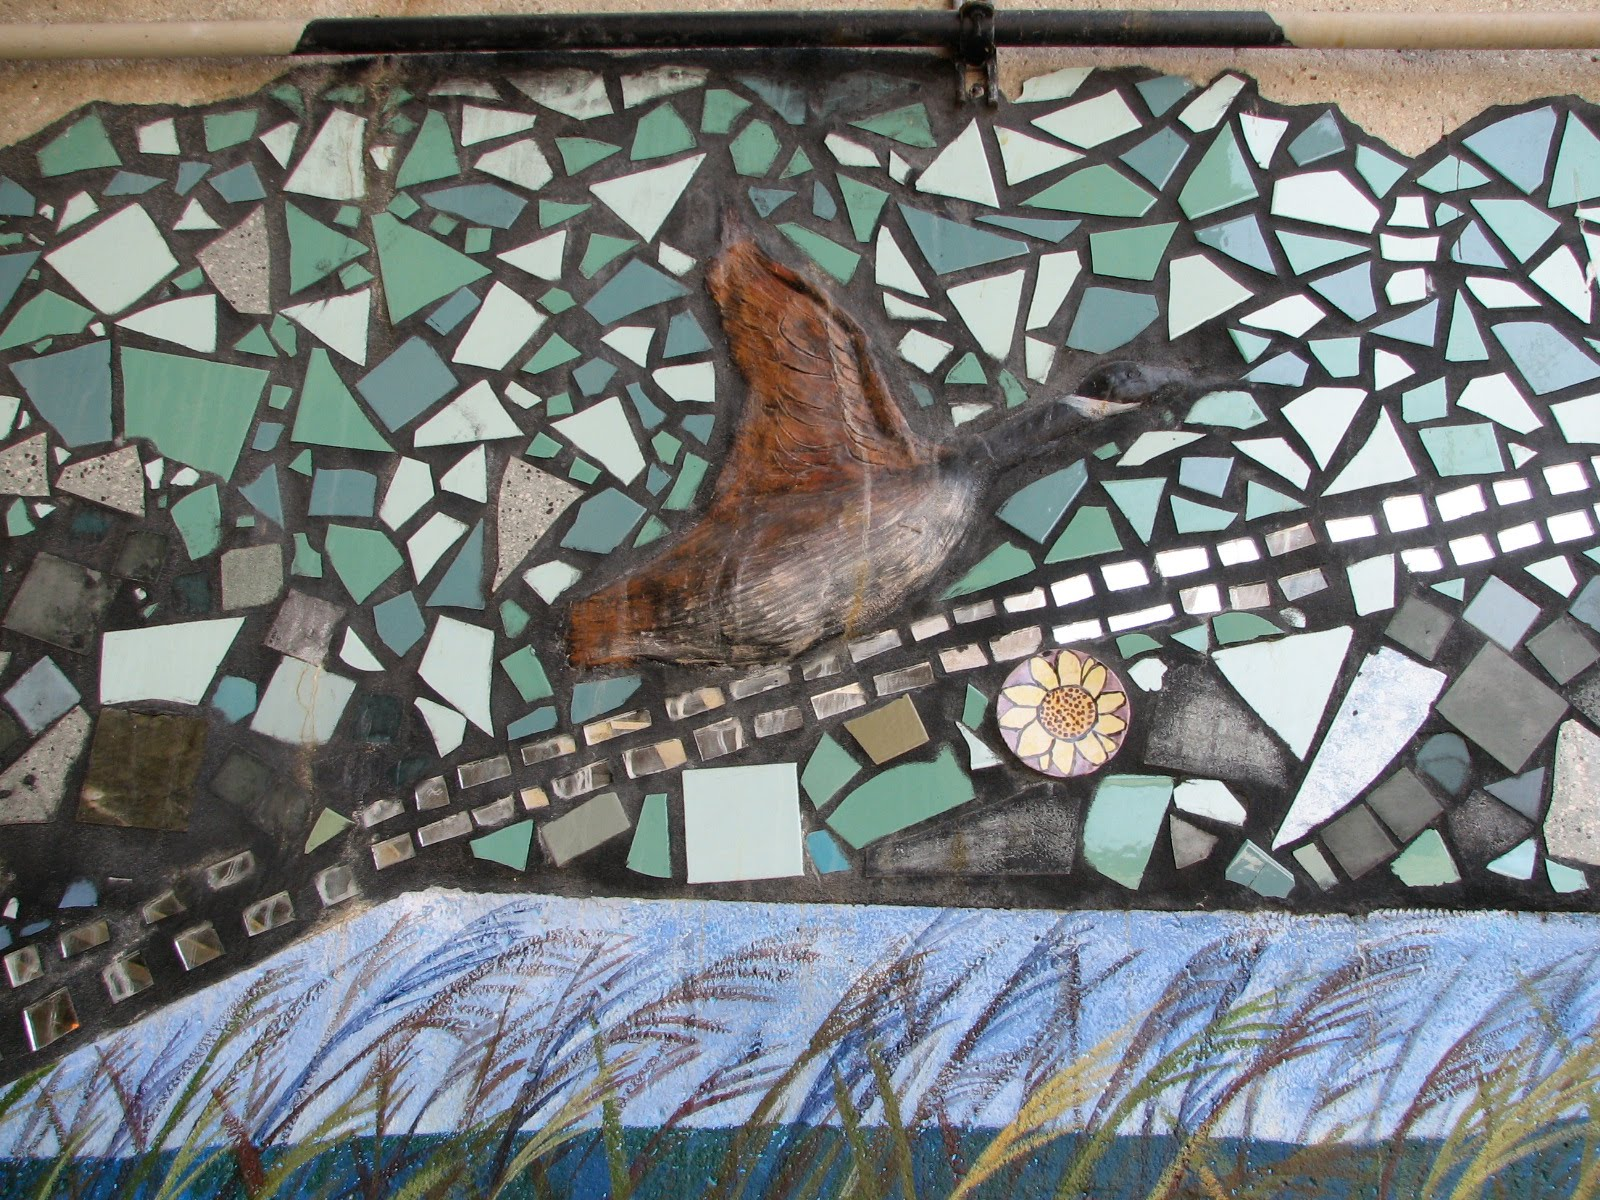 Close up of some of the detail of the mural, waterfowl taking flight. Photo Credit: Jim Bartholomew, 2010.